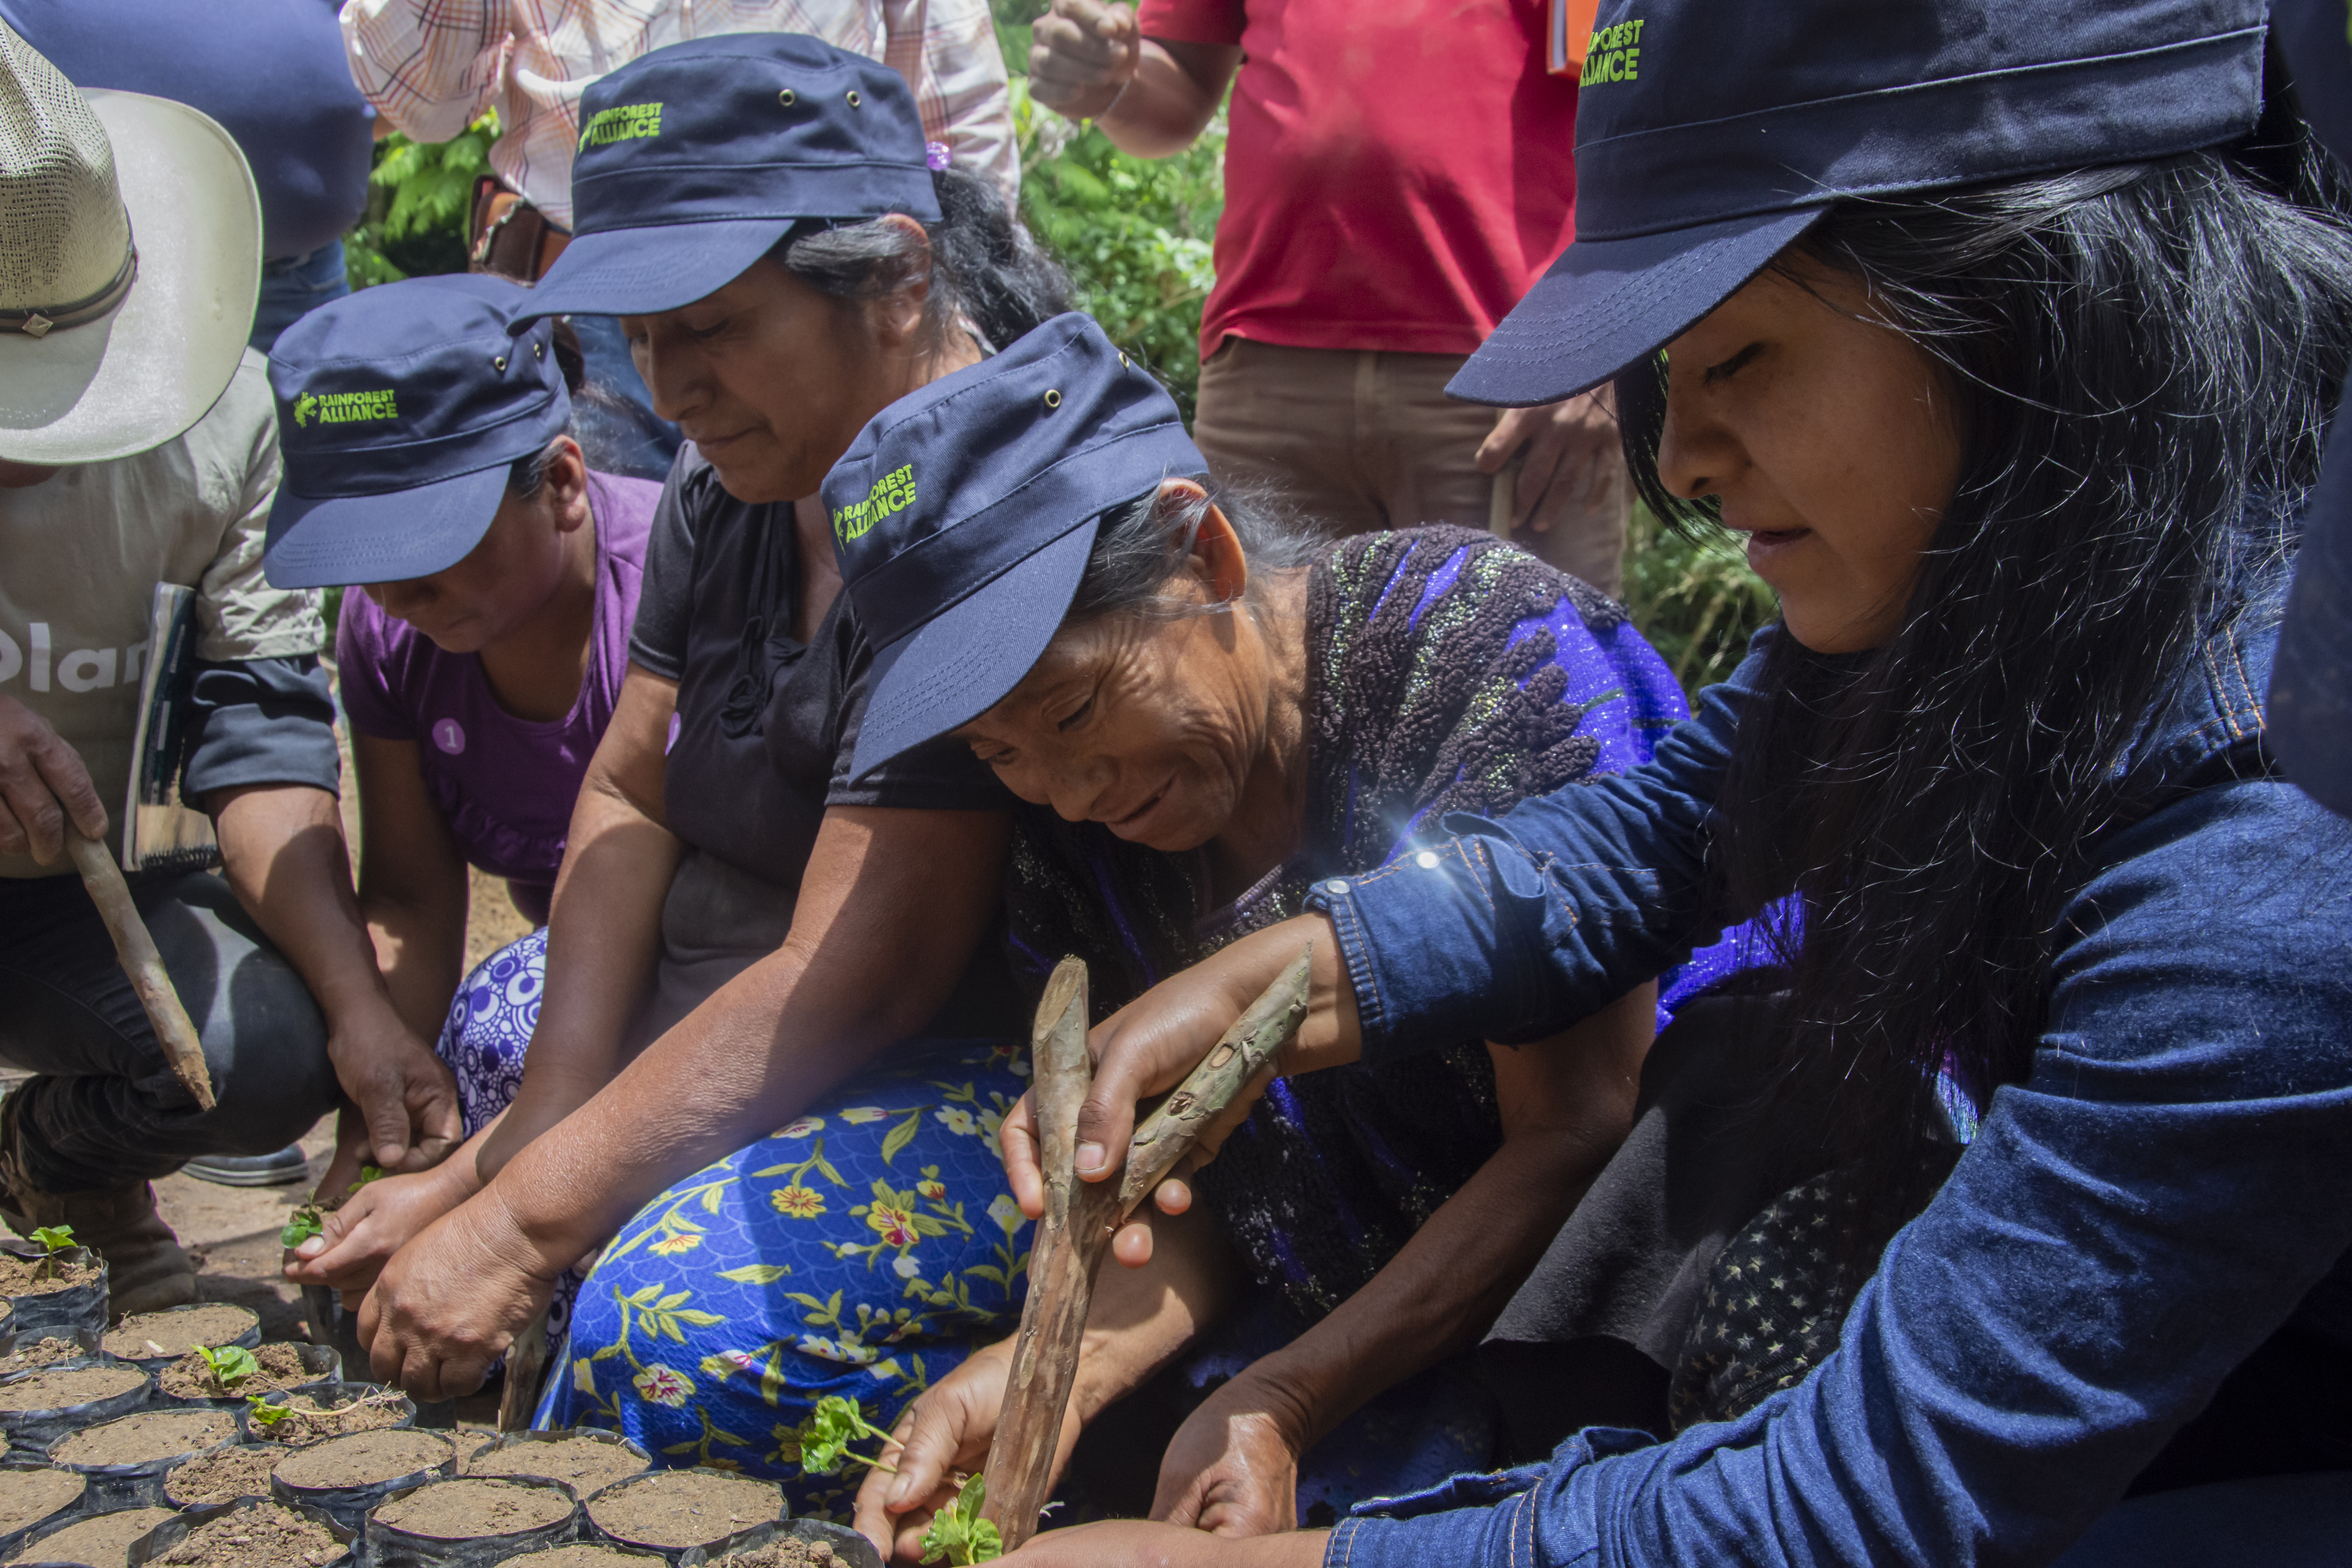 Men and women sit together in a close group, planting seeds in small containers.